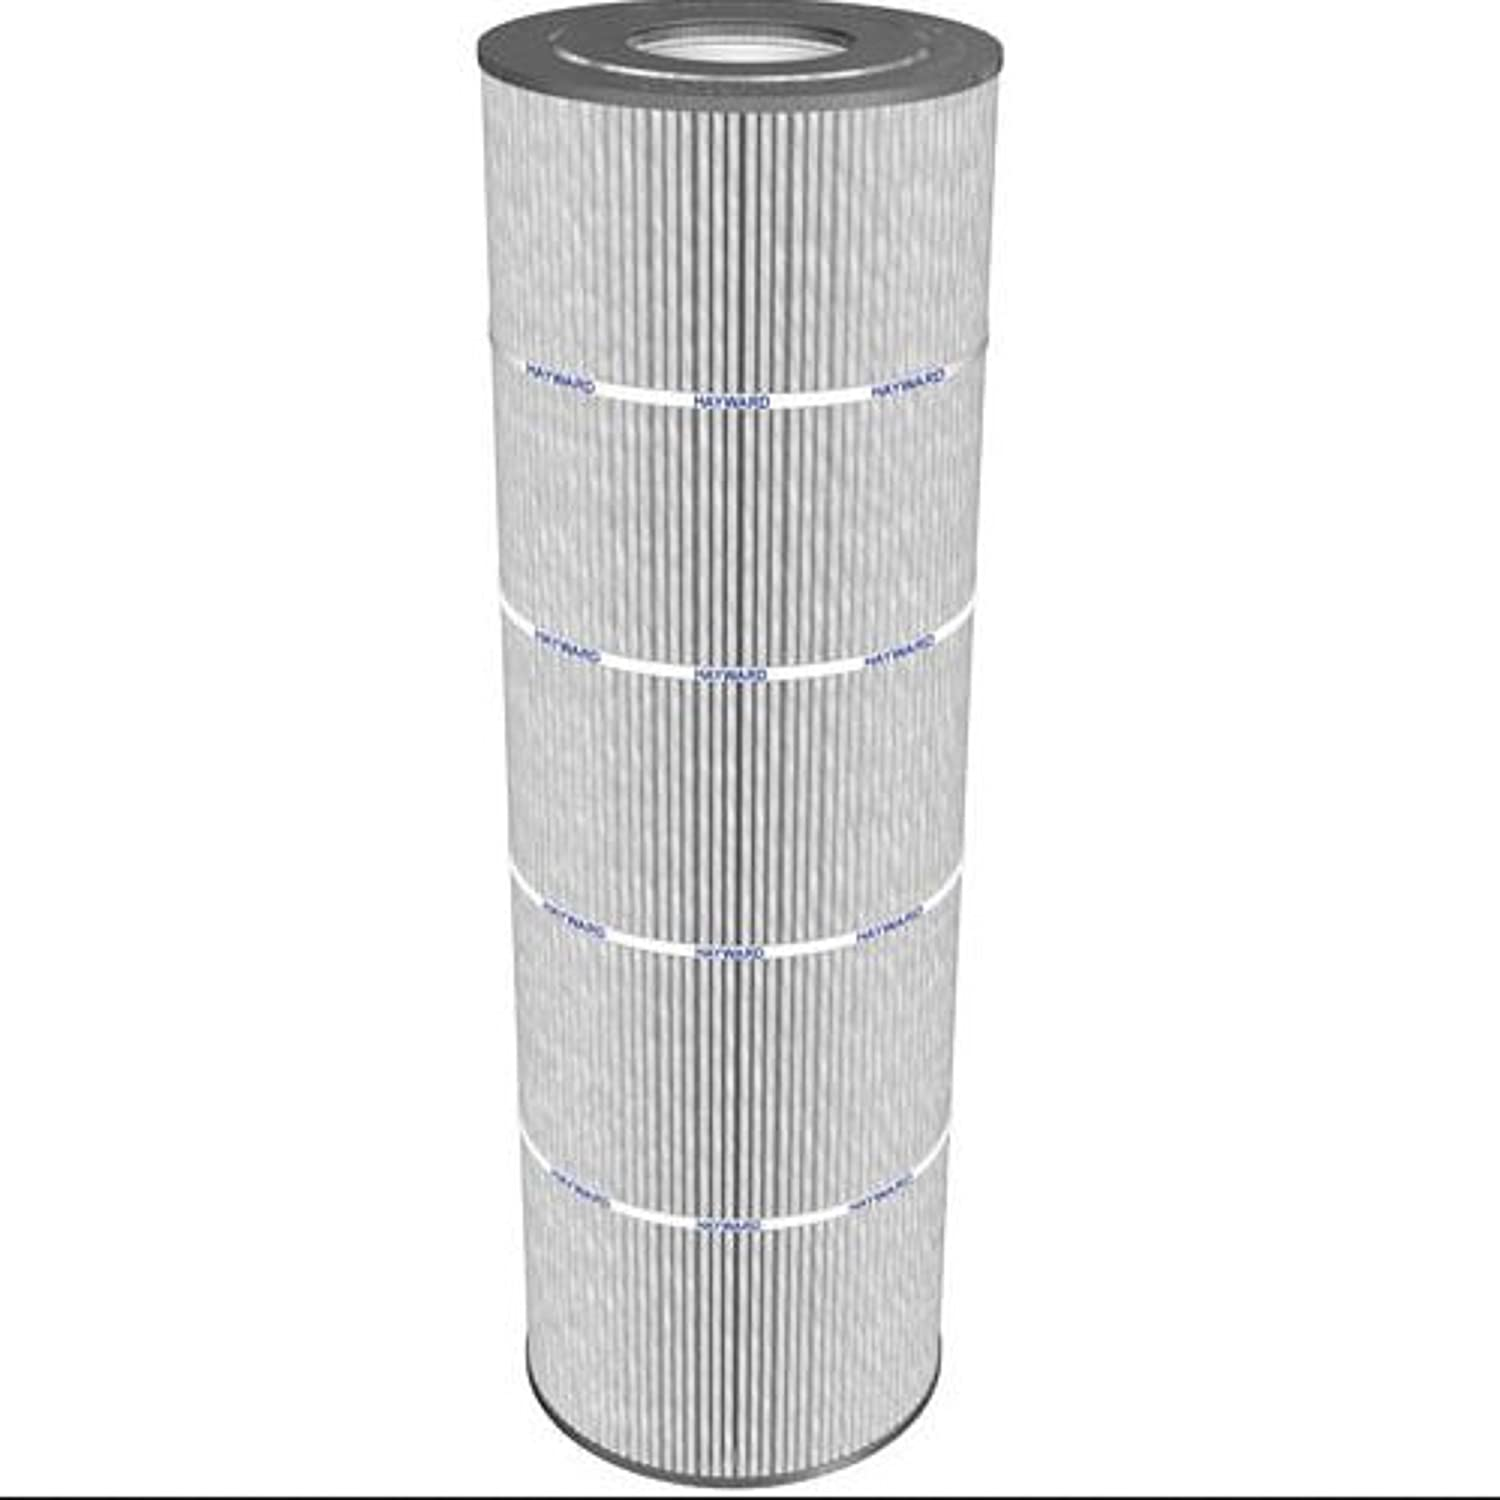 Hayward CCX1500RE (CC 1500 E) Replacement Pool Filter Cartridge Elements, 150-Square-Foot